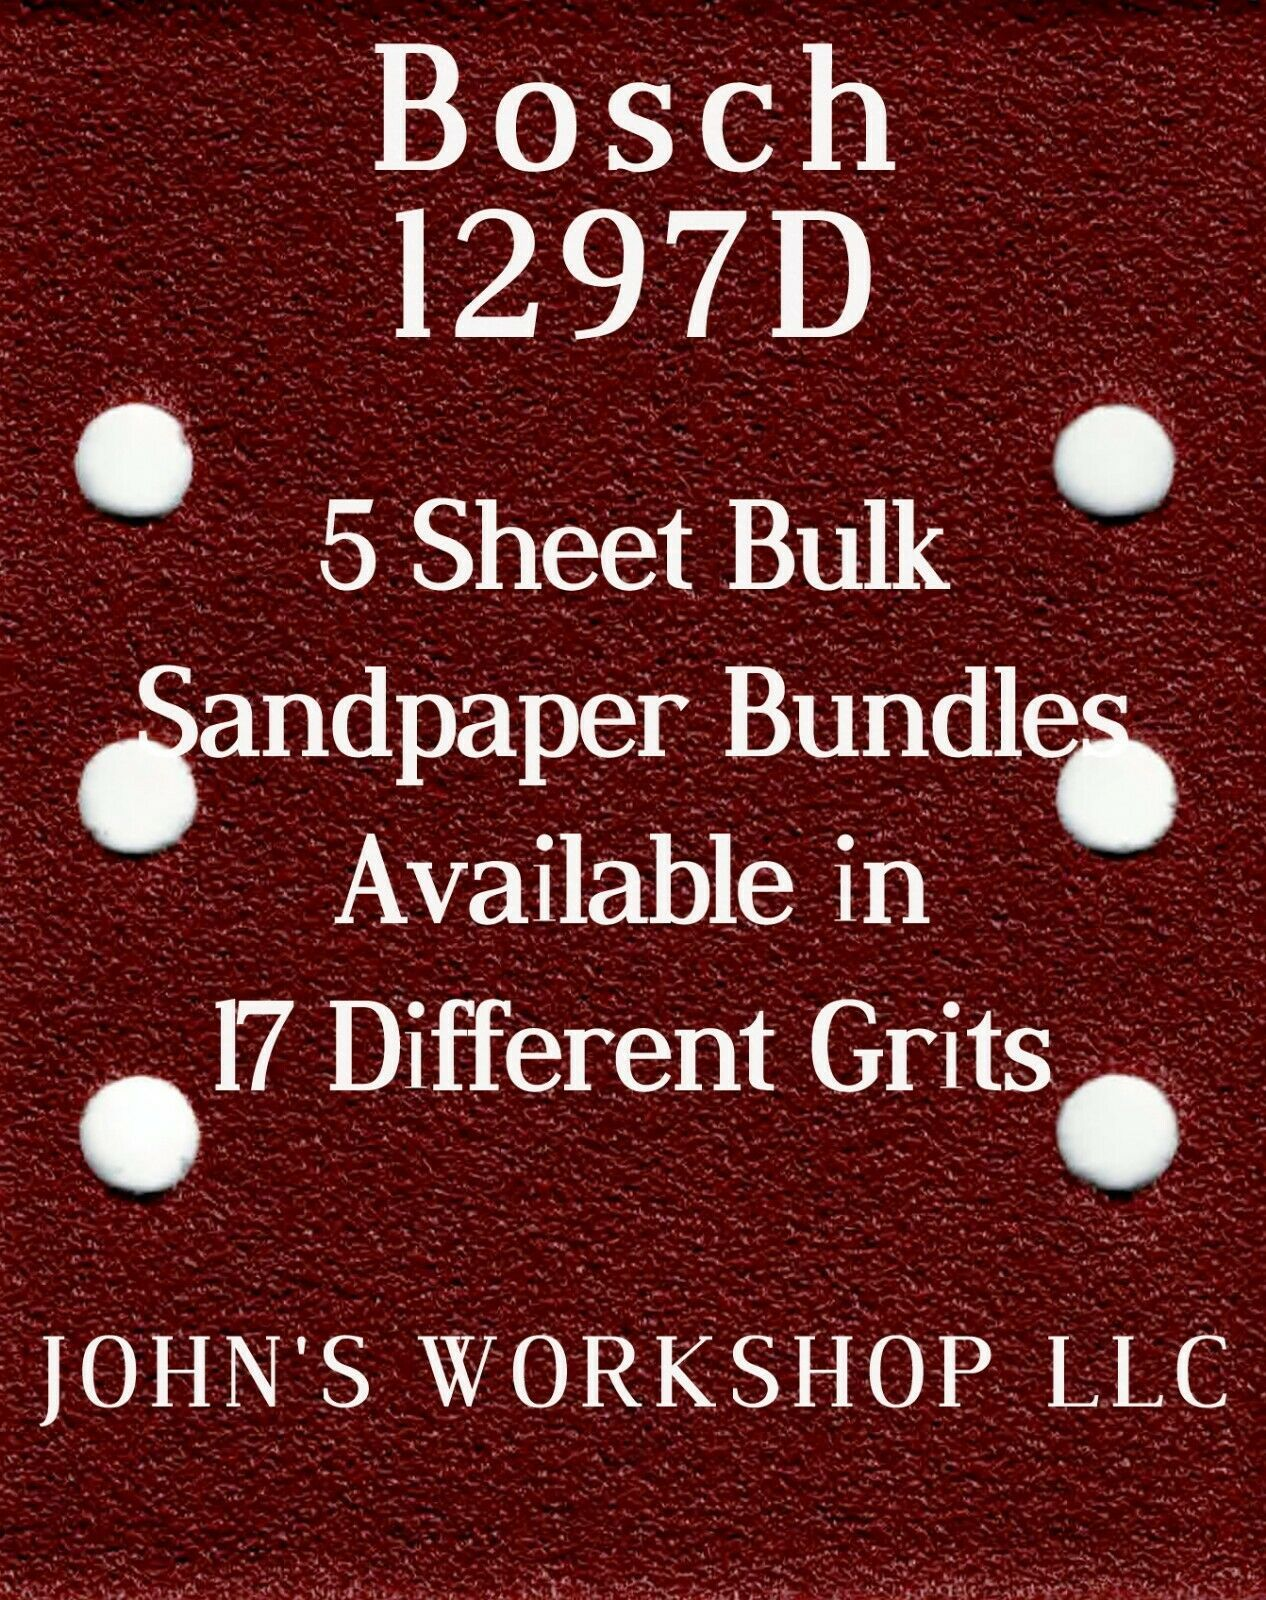 Primary image for Bosch 1297D - 1/4 Sheet - 17 Grits - No-Slip - 5 Sandpaper Bulk Bundles